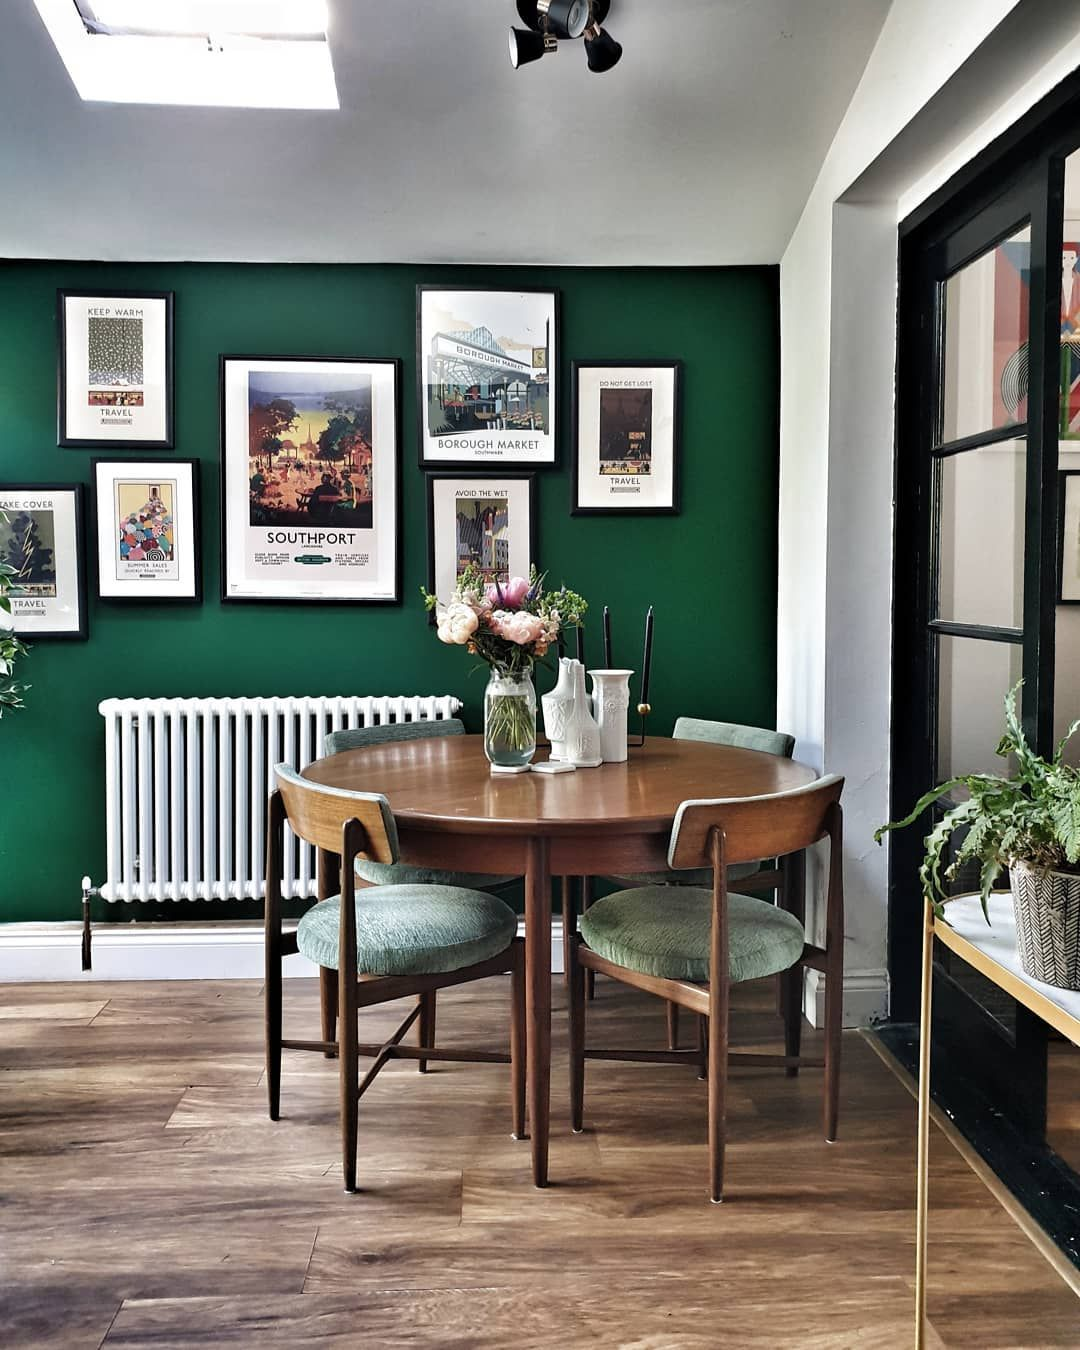 Forest Green Wall Gallery Wall Vintage Dining Table And Chairs And Wooden Flooring In The Dini Green Dining Room Walls Green Dining Room Vintage Dining Table